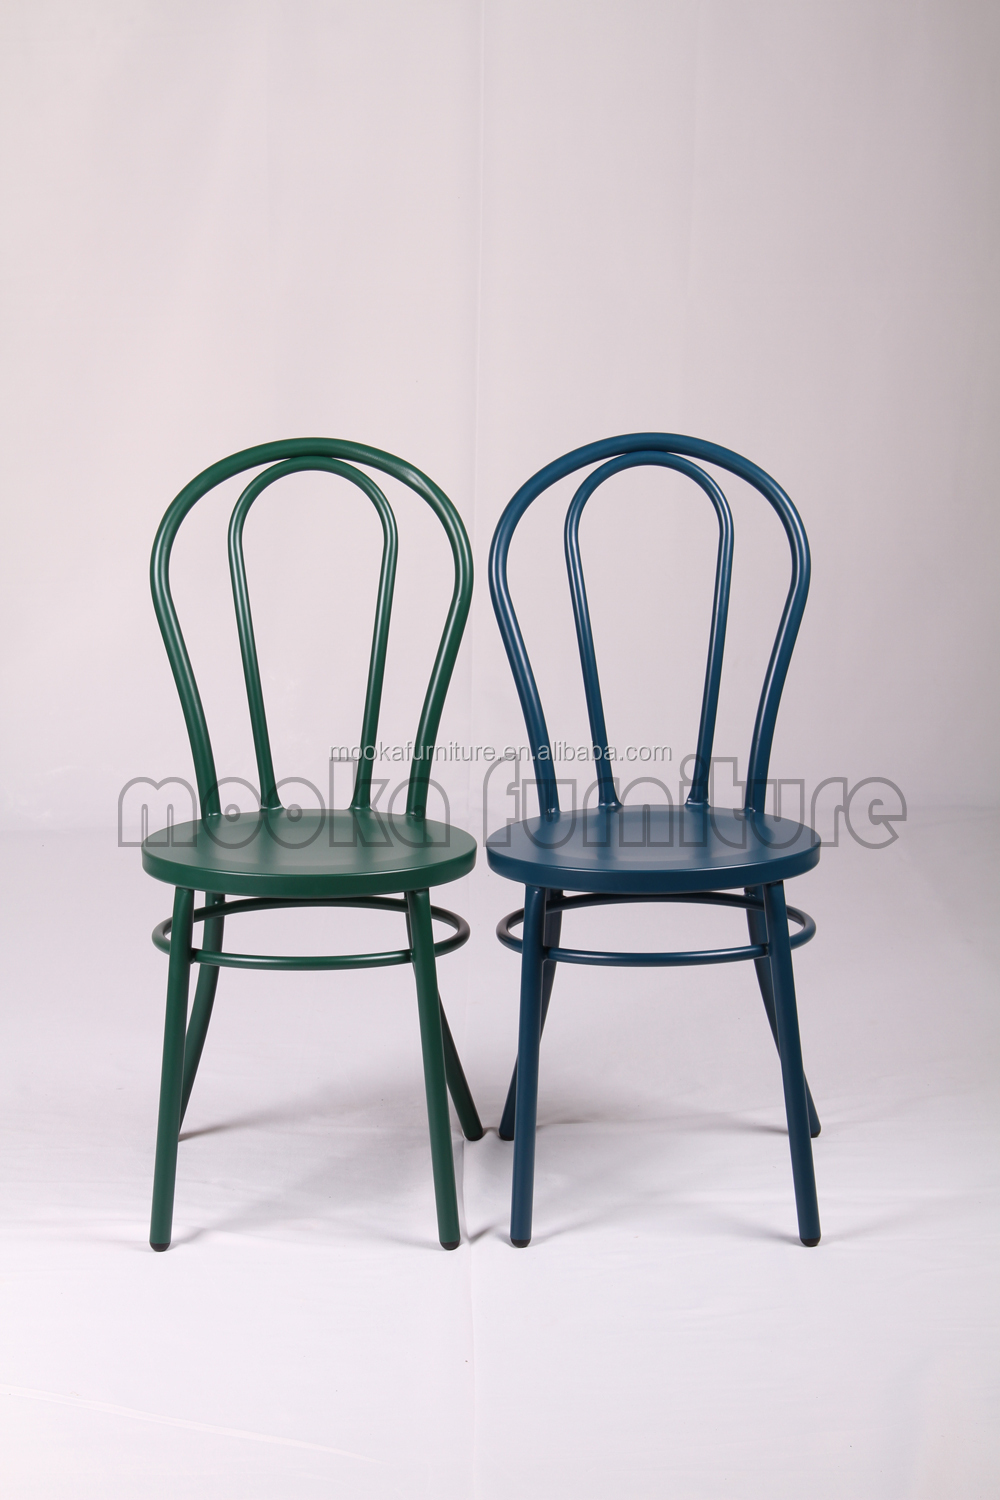 French bistro chairs metal - Bistro Chairs Metal Bistro Chairs French Bistro Chairs Metal French Bistro Chairs